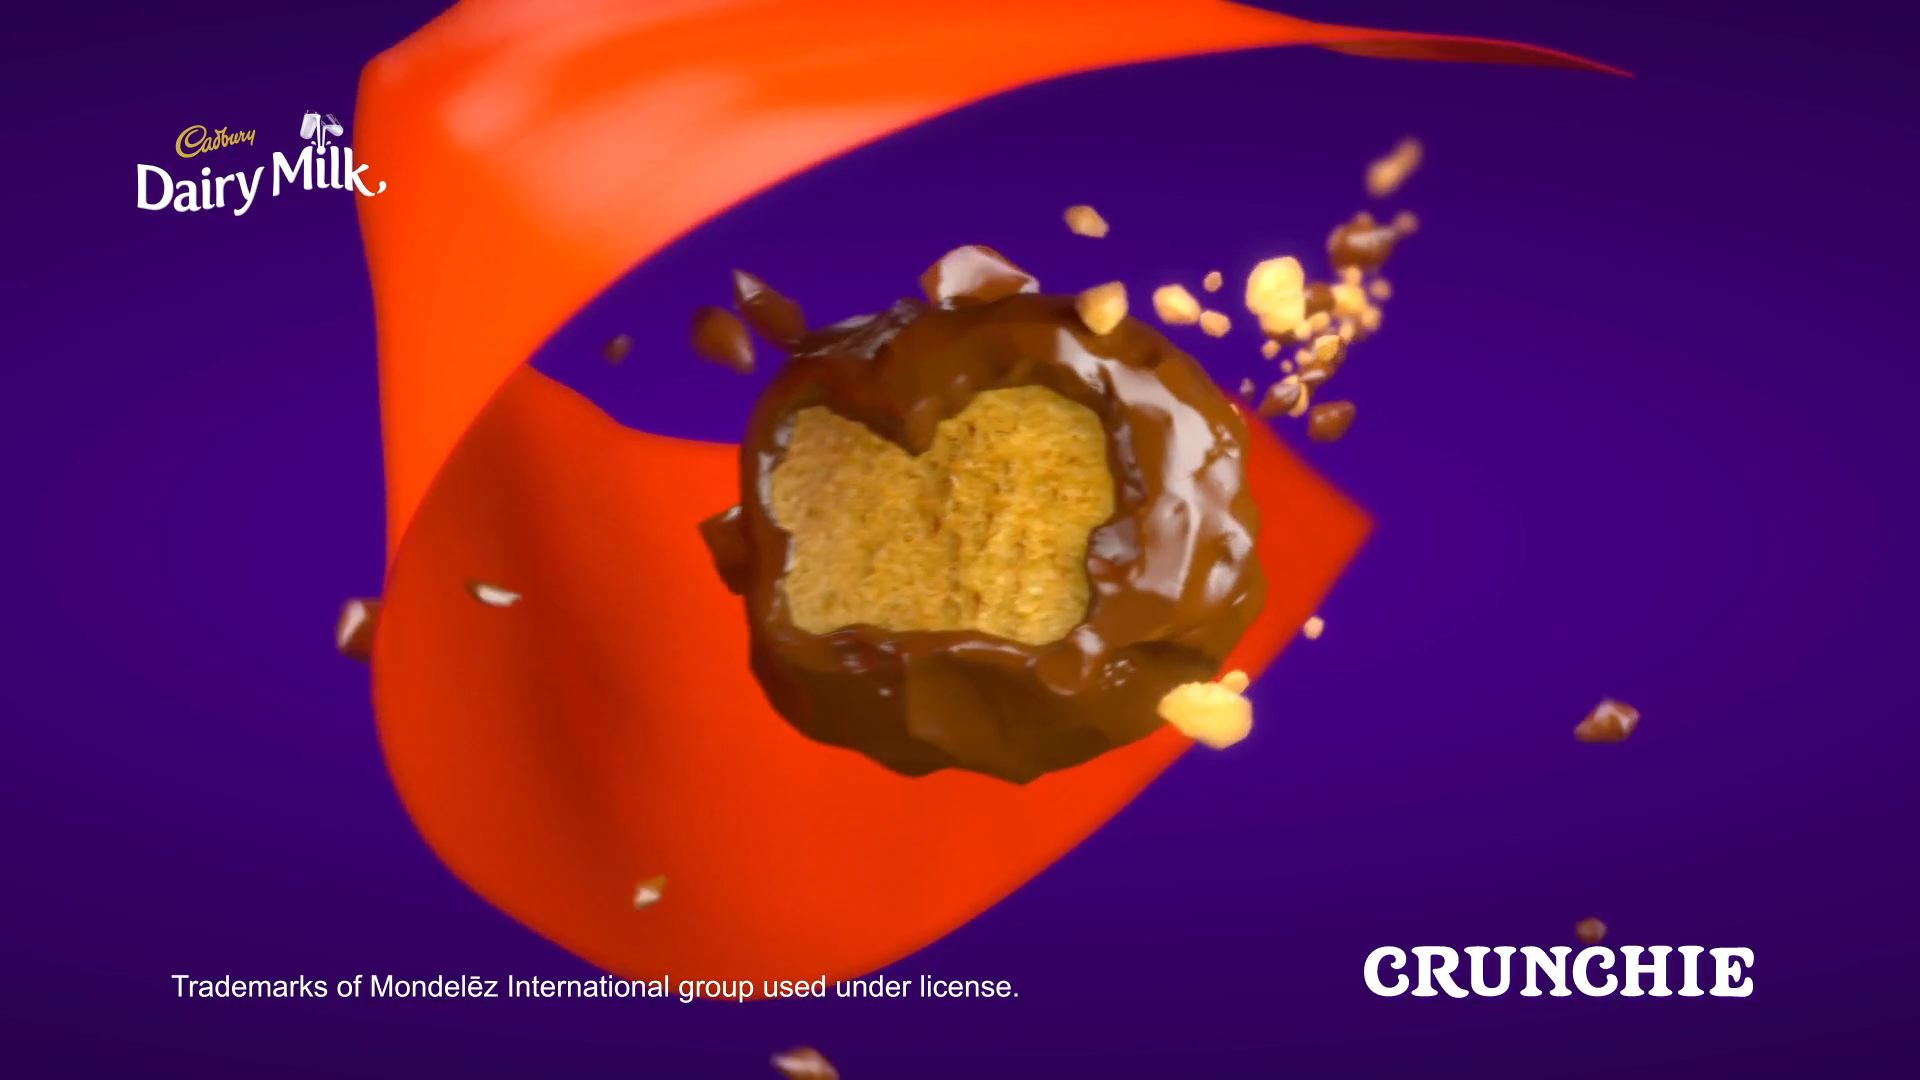 3D animated crunchie chocoalte